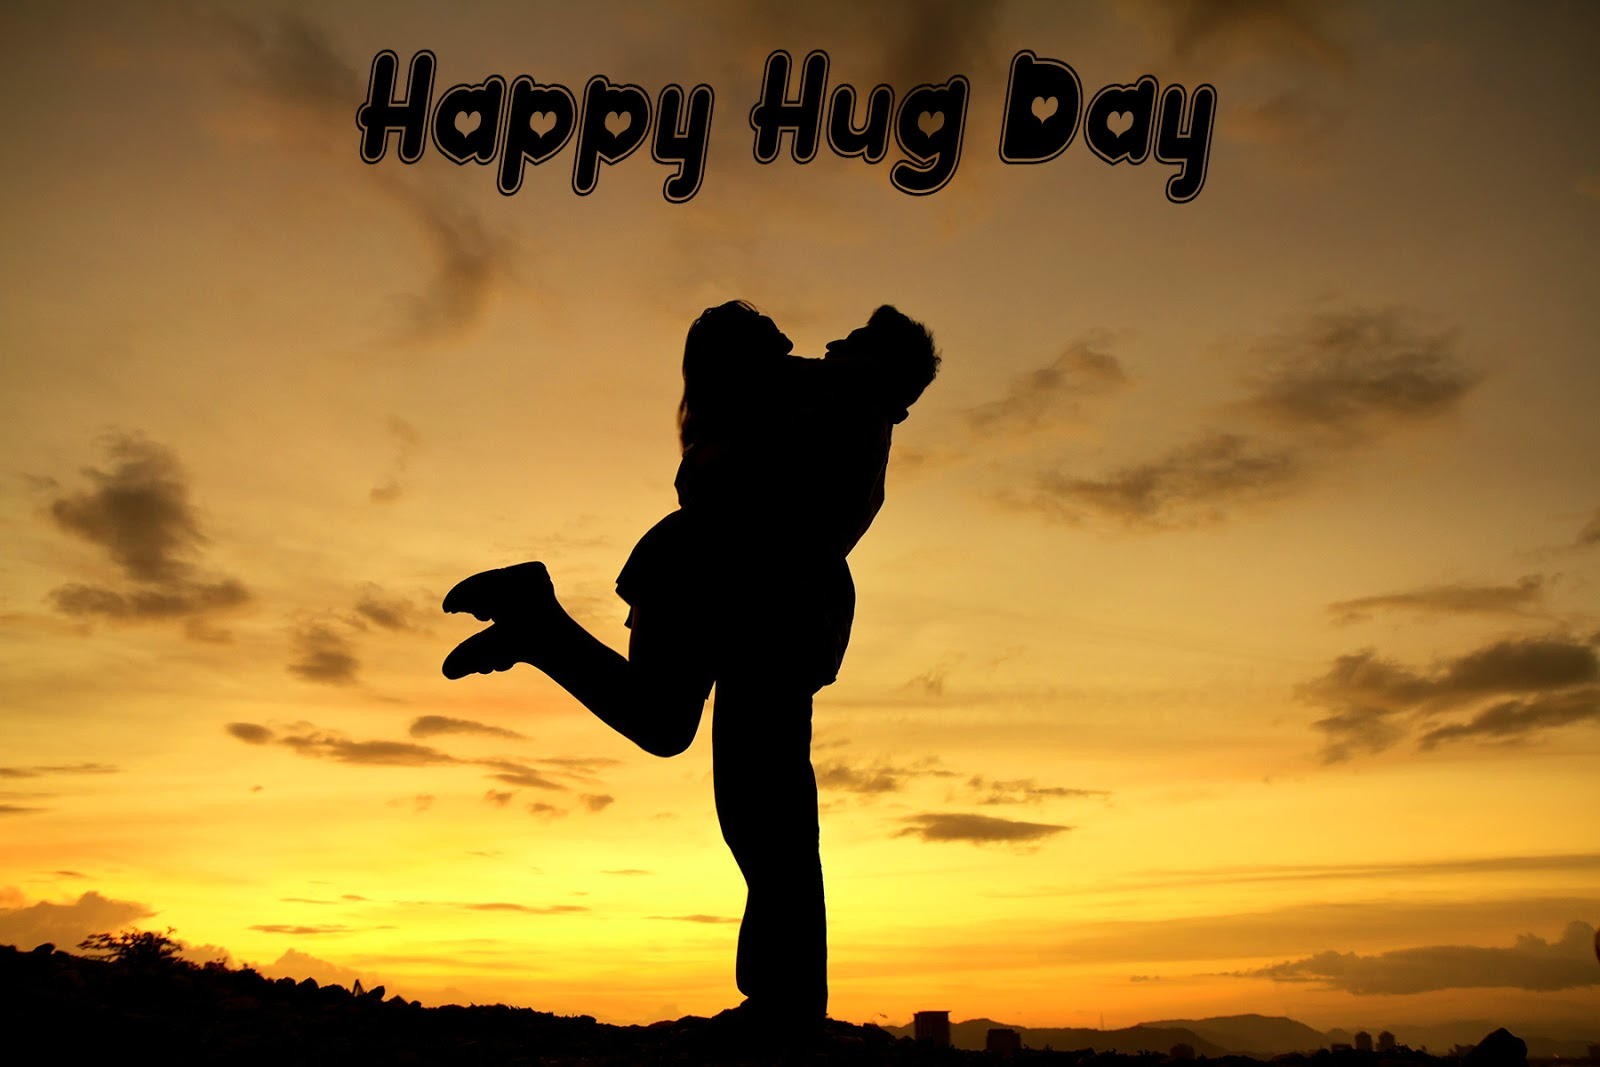 hug day valentines day latest wallpaper